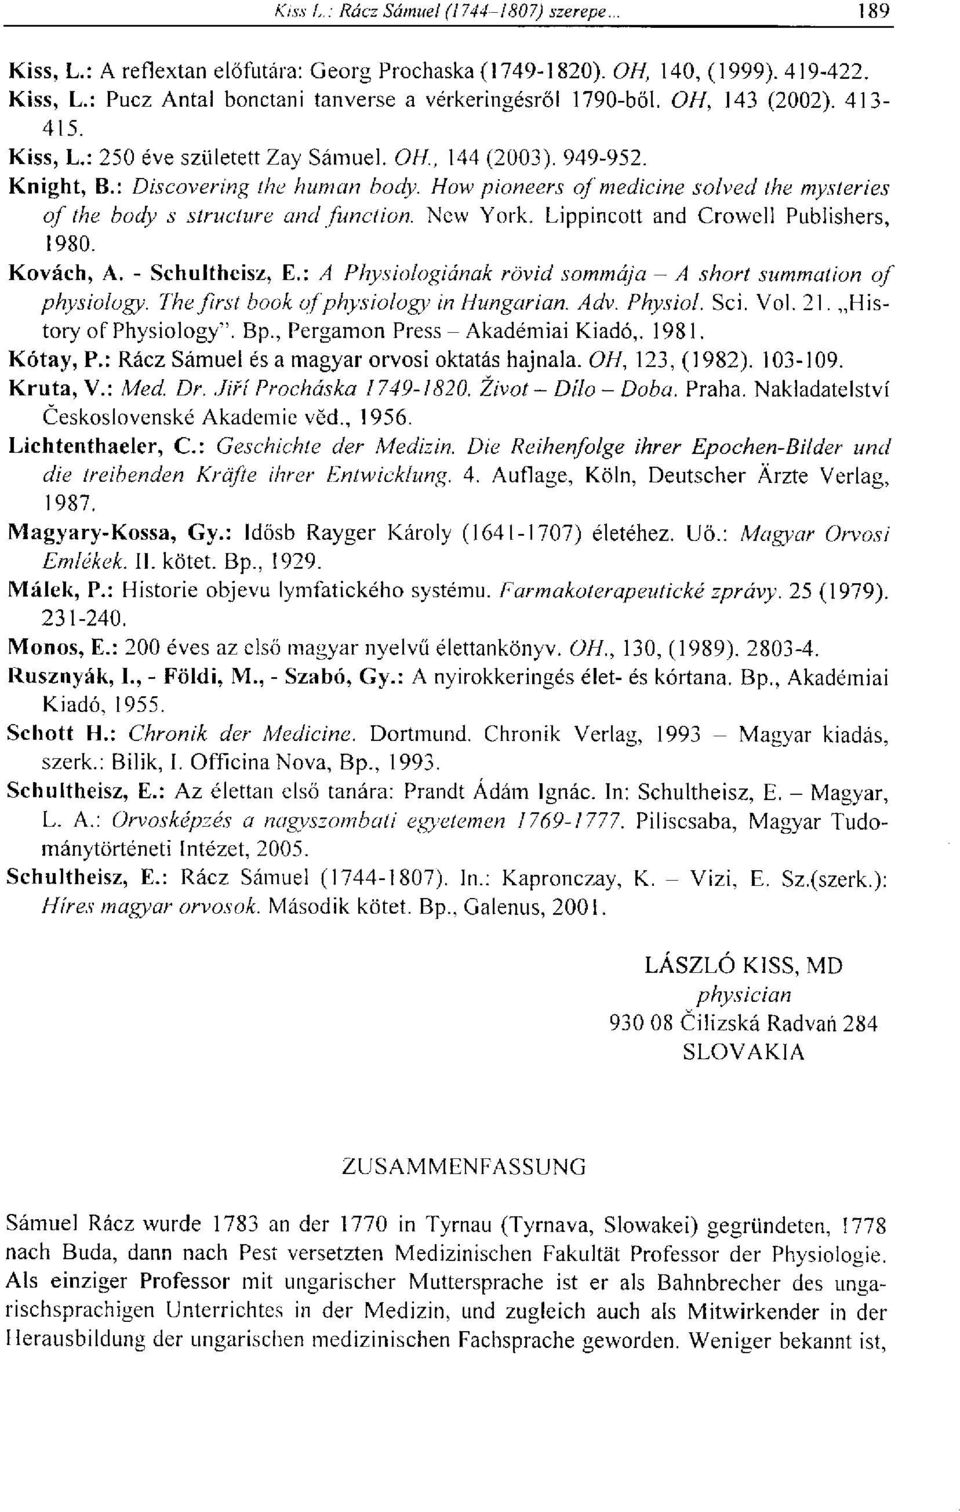 "Kovách, A. - Schultheisz, E.: A Physiologiának rövid sommája - A short summation of physiology. The first book of physiology in Hungarian. Adv. Physiol. Sei. Vol. 21. History of Physiology"". Bp."